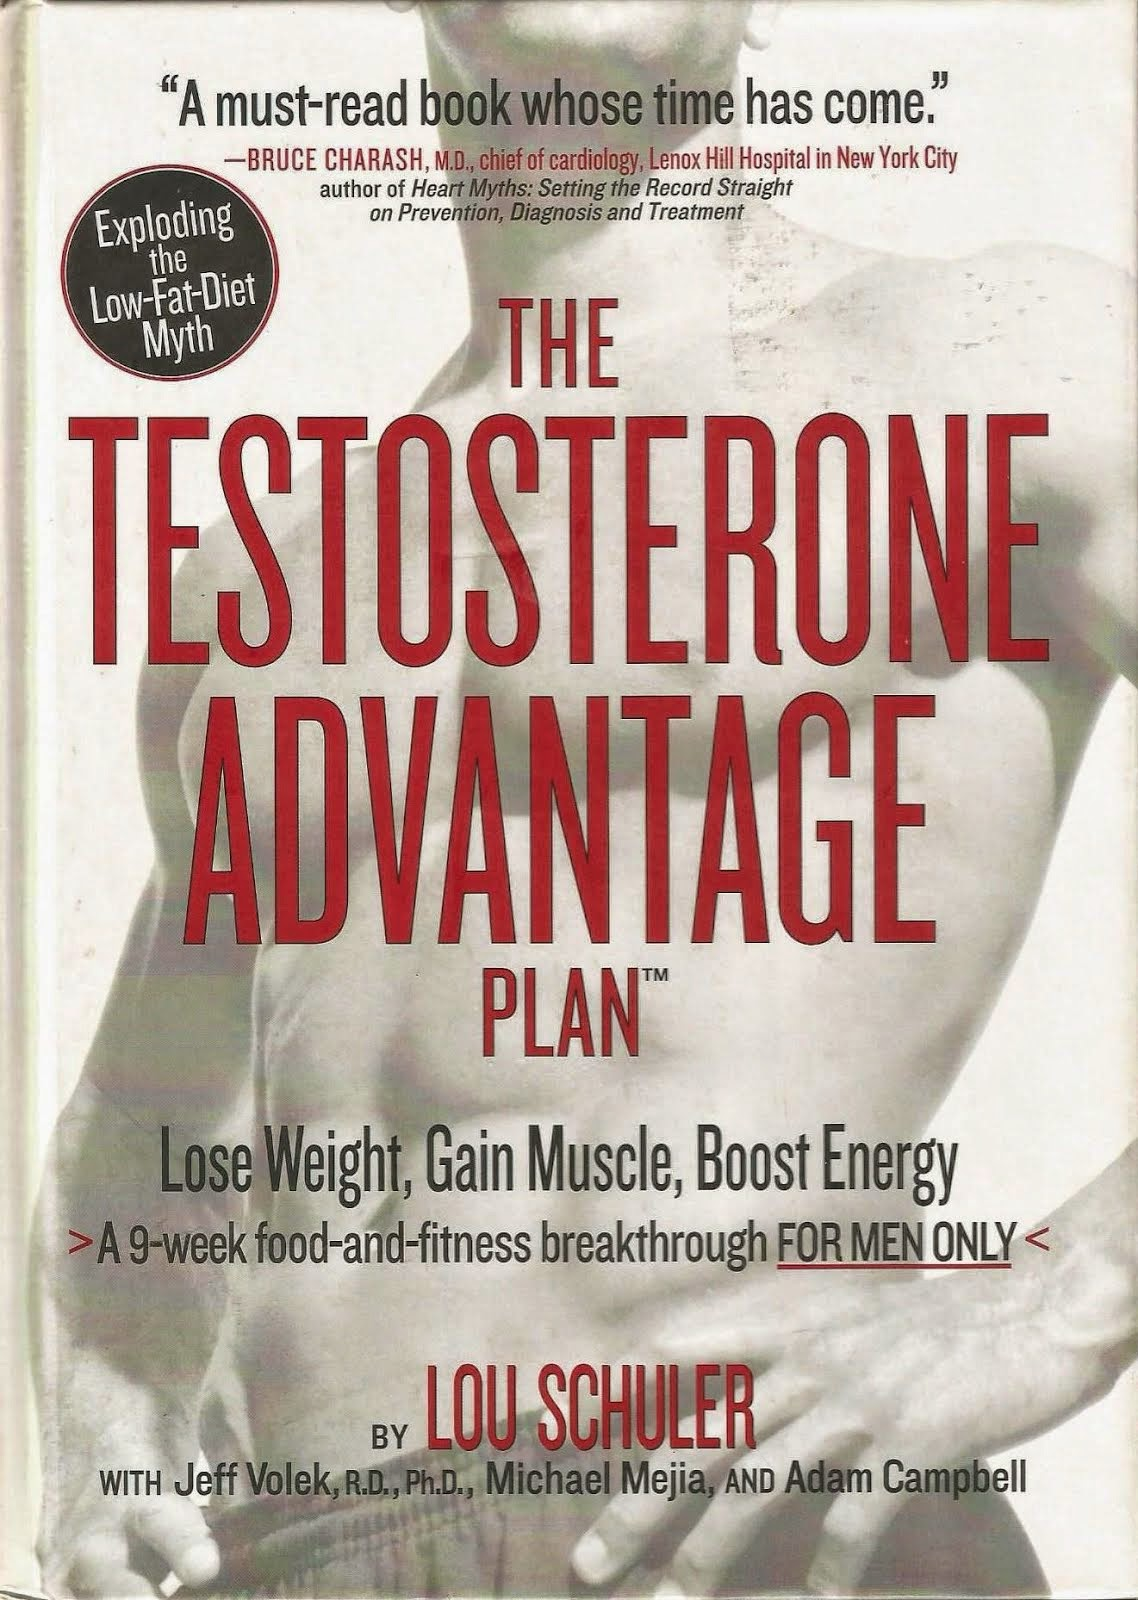 THE TESTOSTERONE ADVANTAGE PLAN BY LOU SCHULER